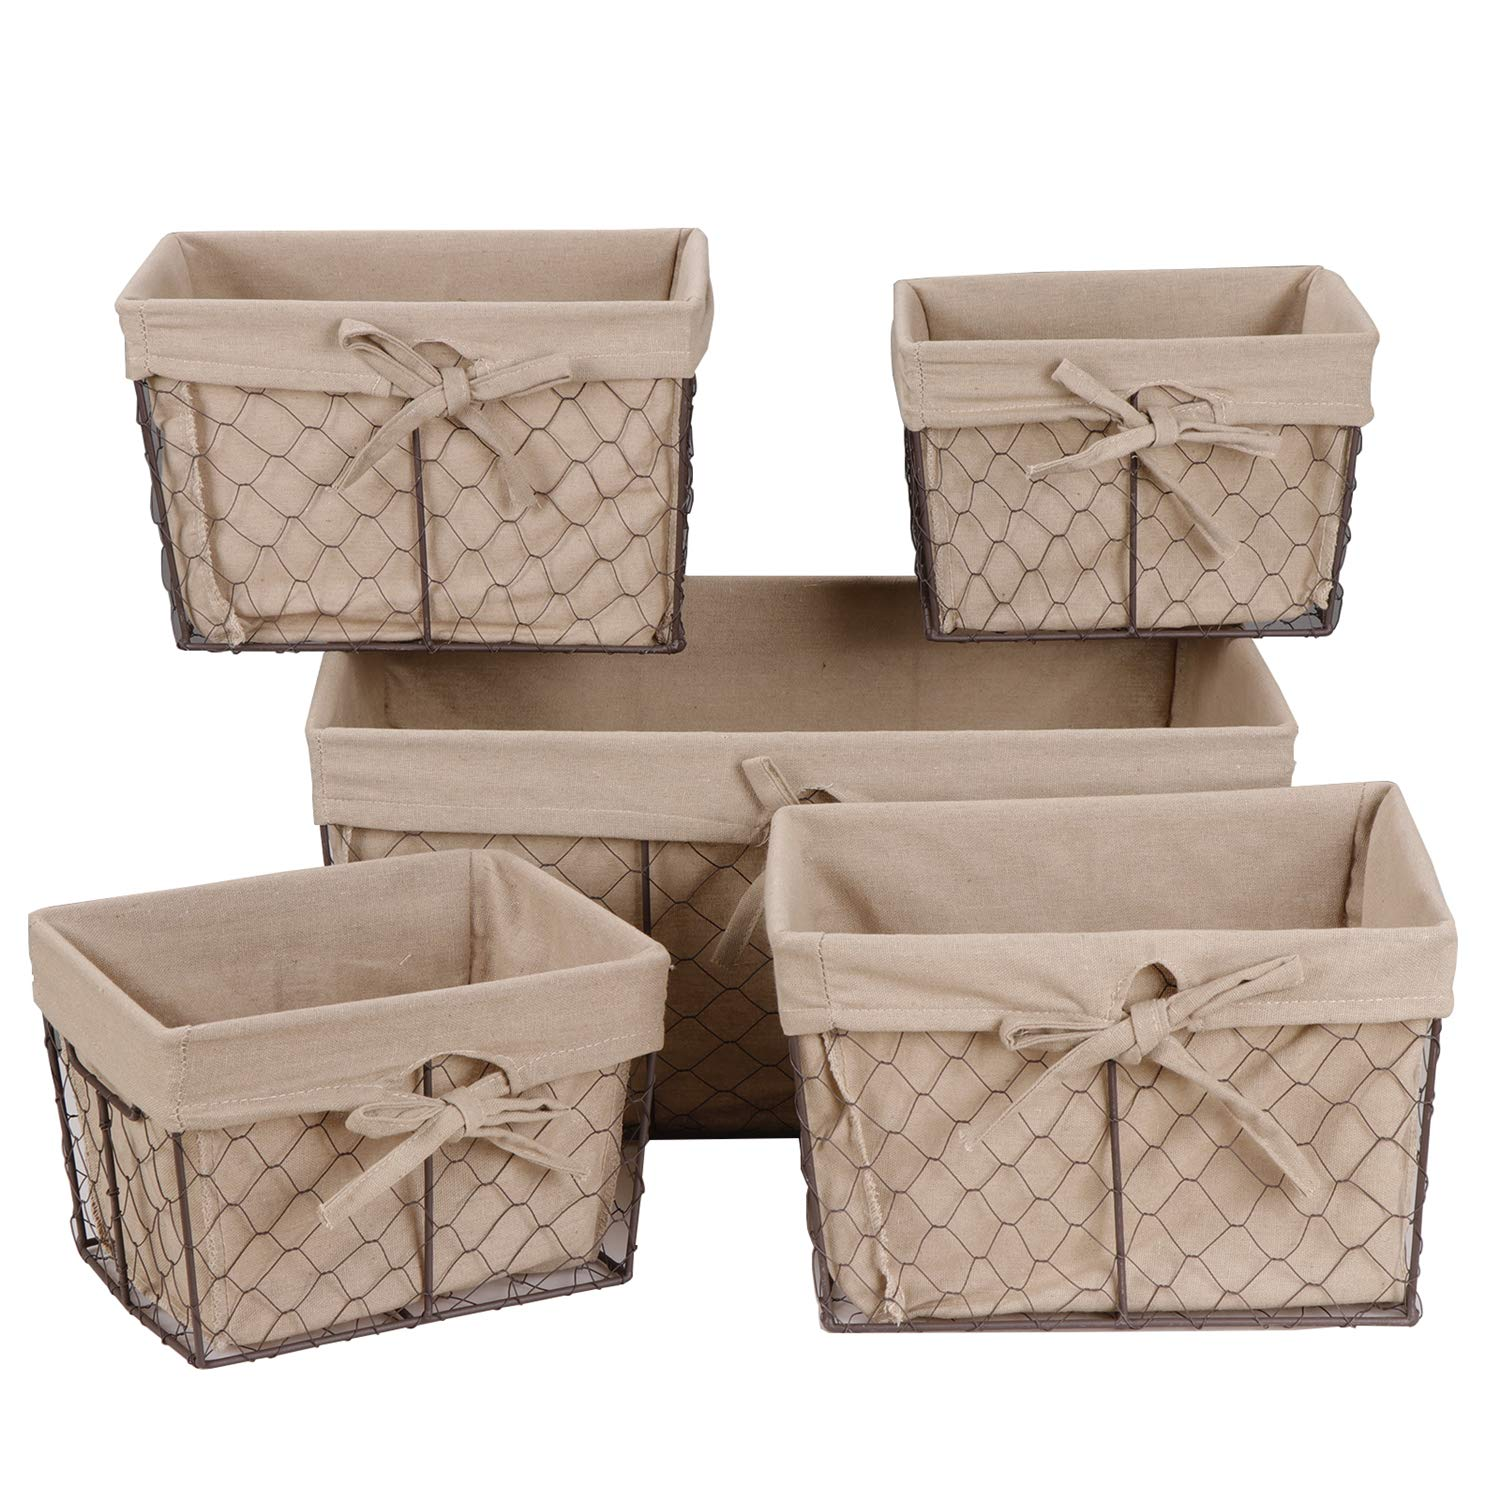 F2C Home Decor Set of 5 Vintage Fruit Toy Clothes Metal Chicken Wire Storage Basket Organizer W/Removable Fabric Liner for Bathroom Kitchen Office Baby Nursery Bedroom Shelf